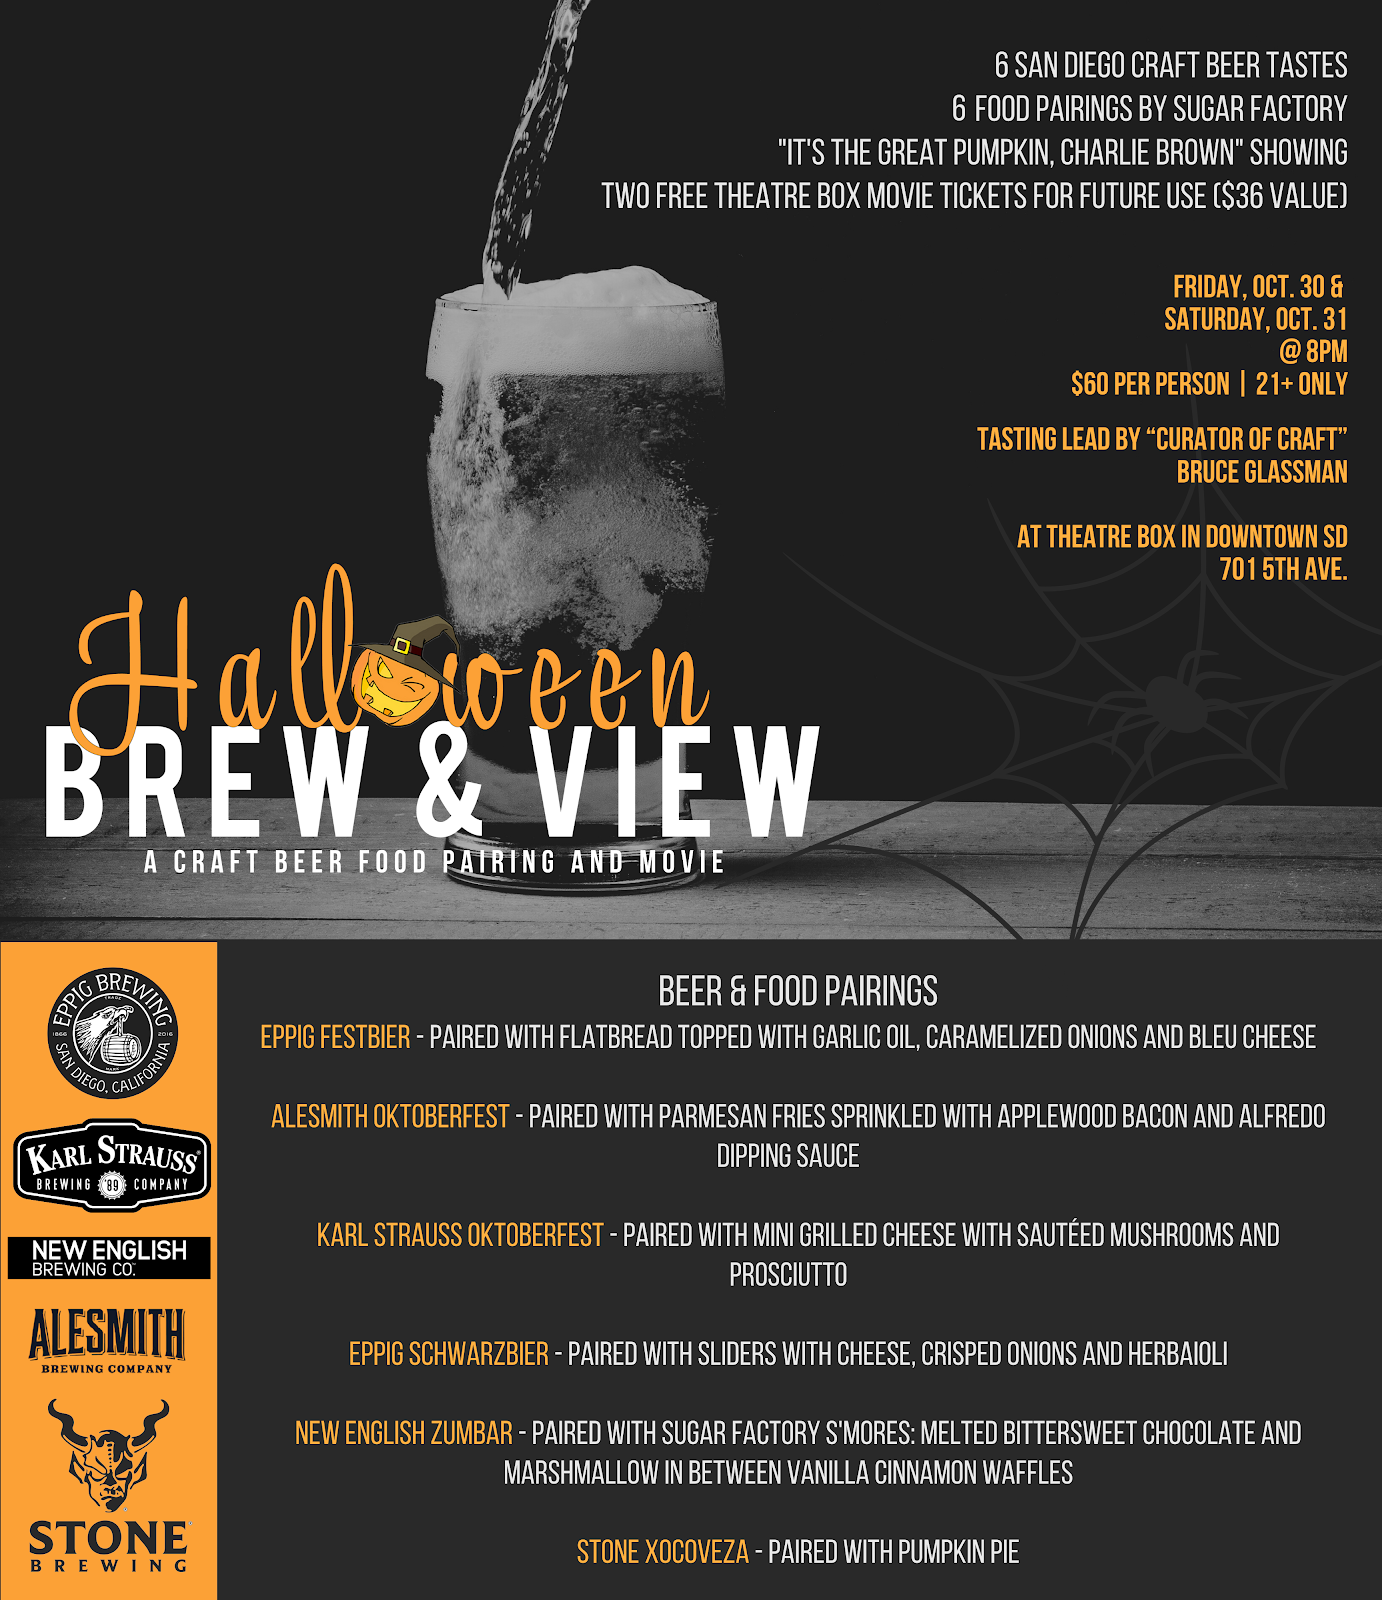 Don't miss the San Diego Halloween Brew & View - October 30 & 31!